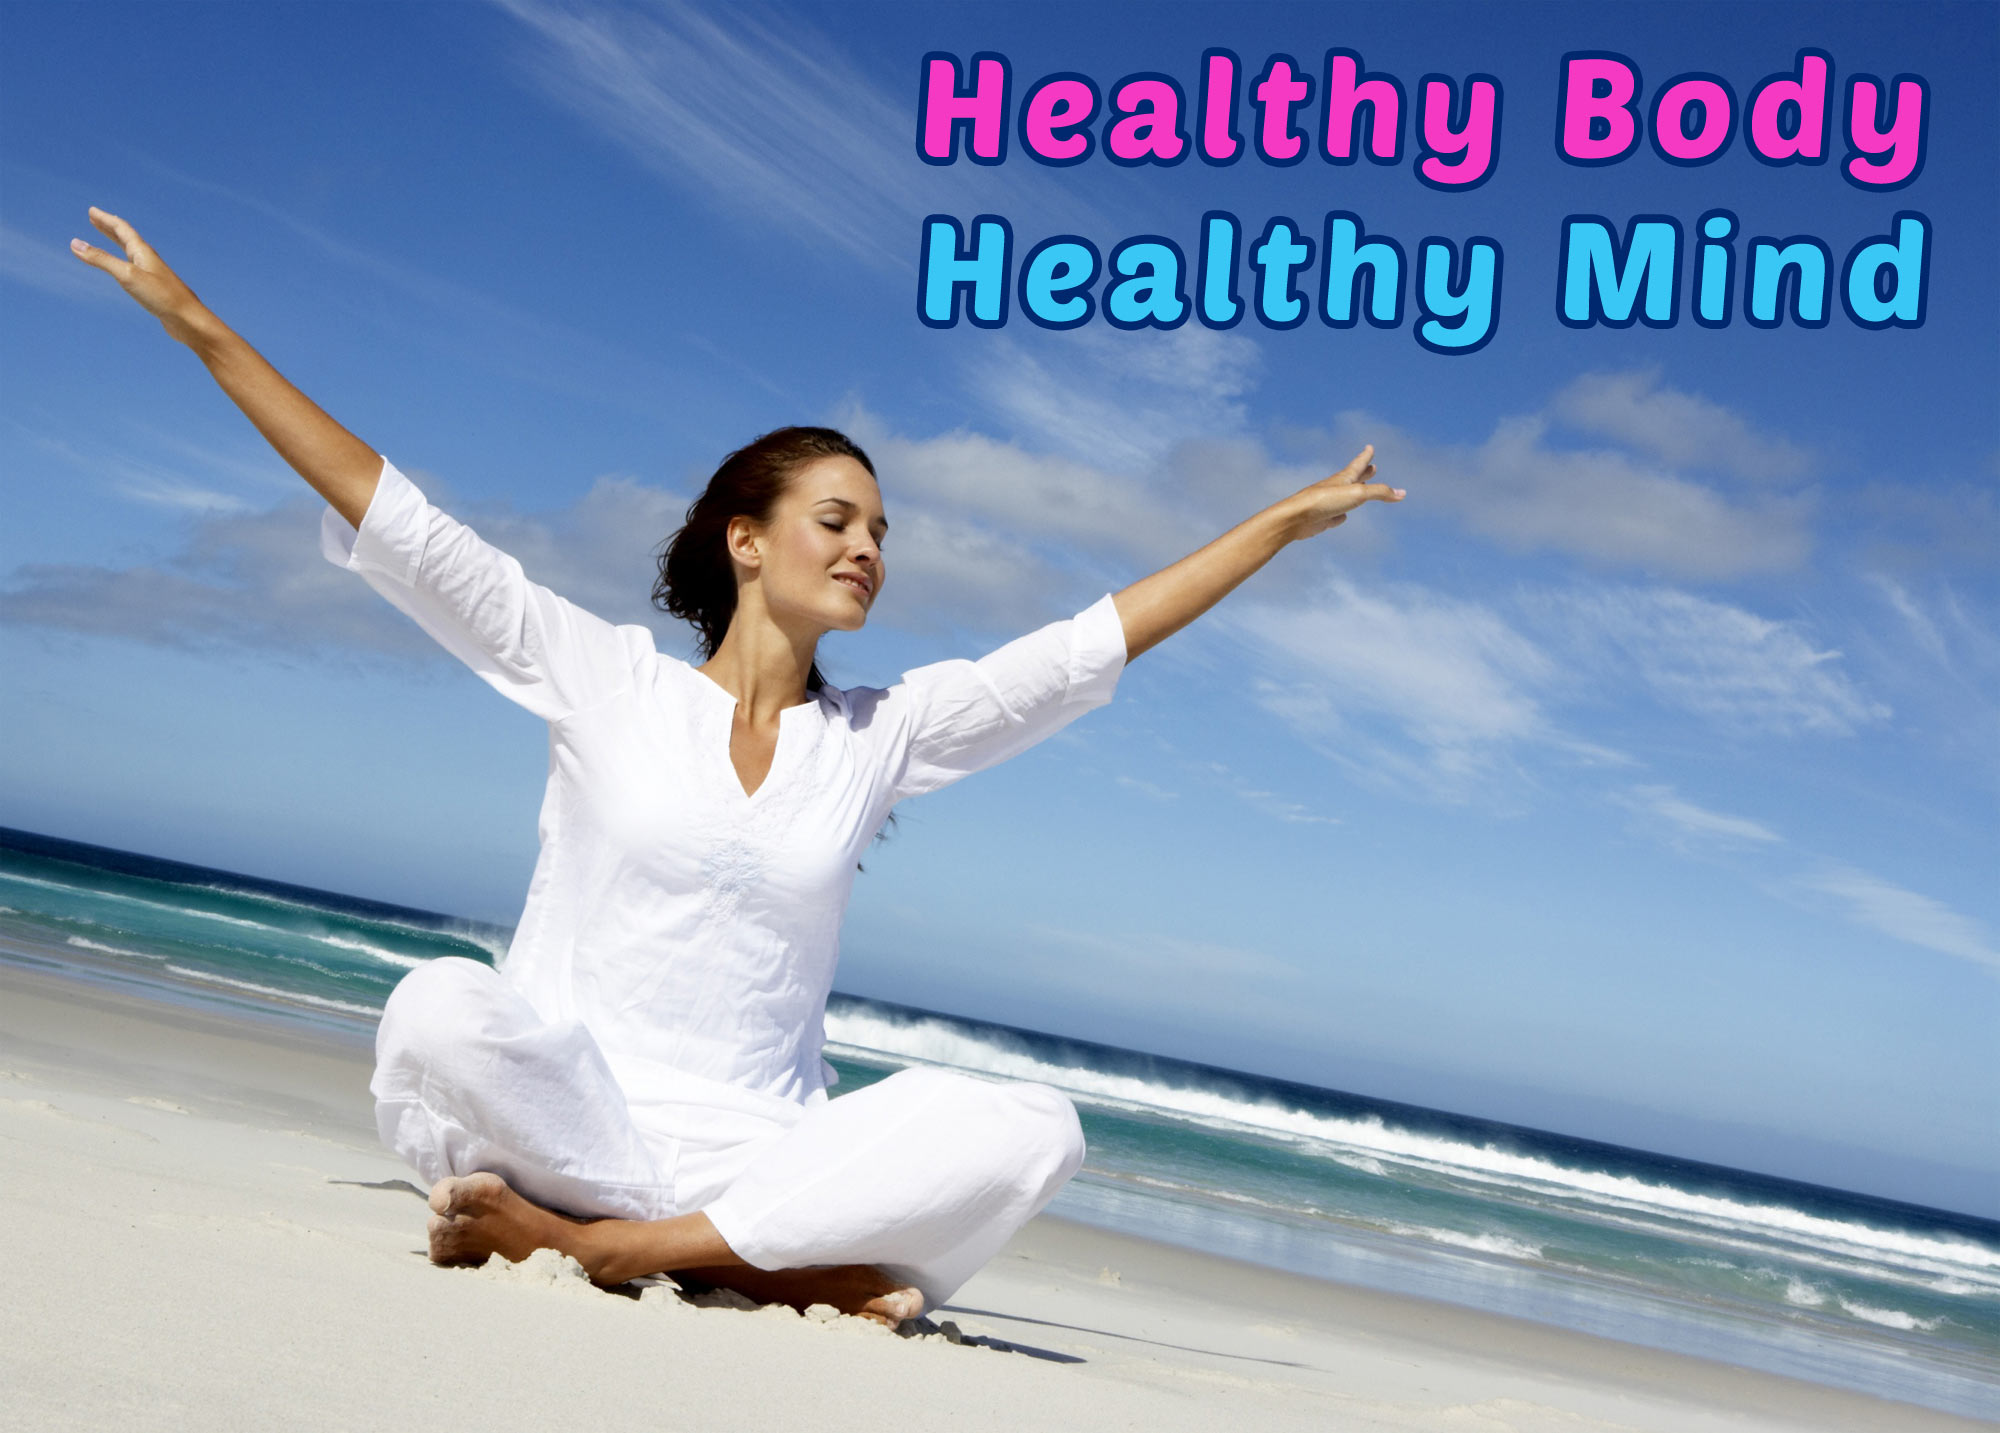 Healthy Mind  Healthy Body   Pritikin Health  amp  Weight Loss Program Do you feel like you have absolutely no time to think about or plan the food that you eat every day  No time for the supermarket